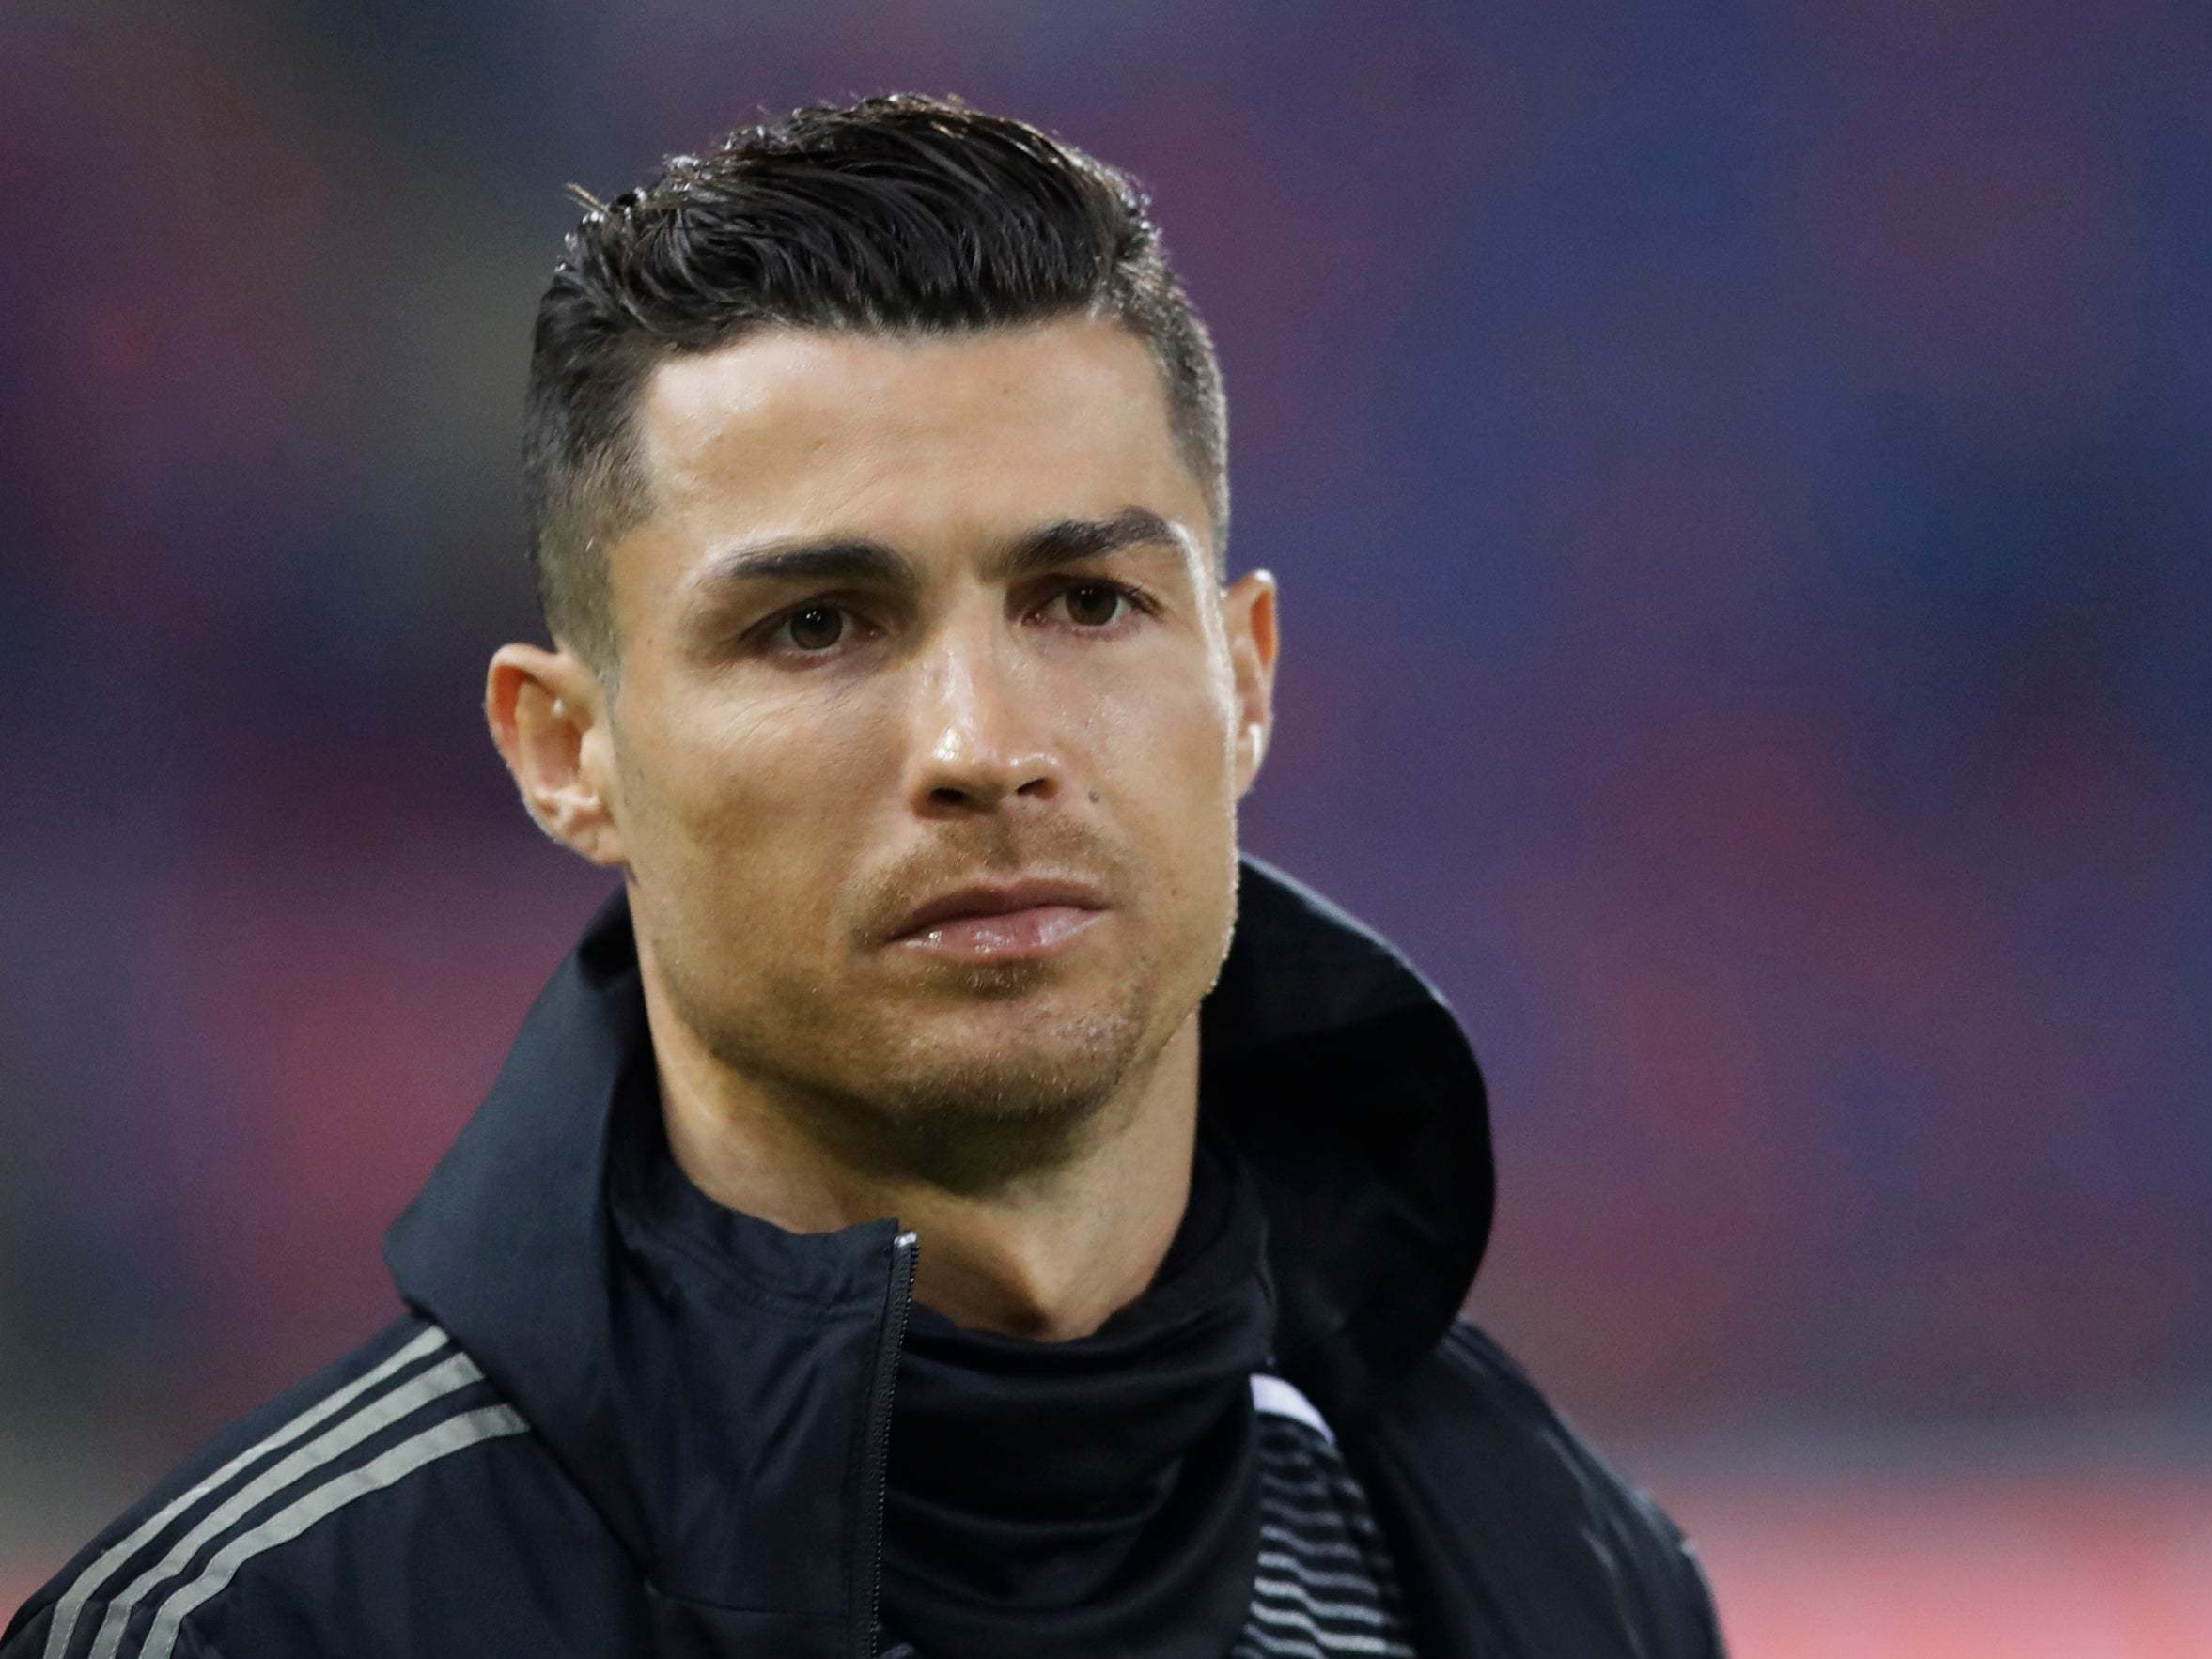 Cristiano Ronaldo: Juventus superstar open to retirement next year and boasts about unparalleled 'records'